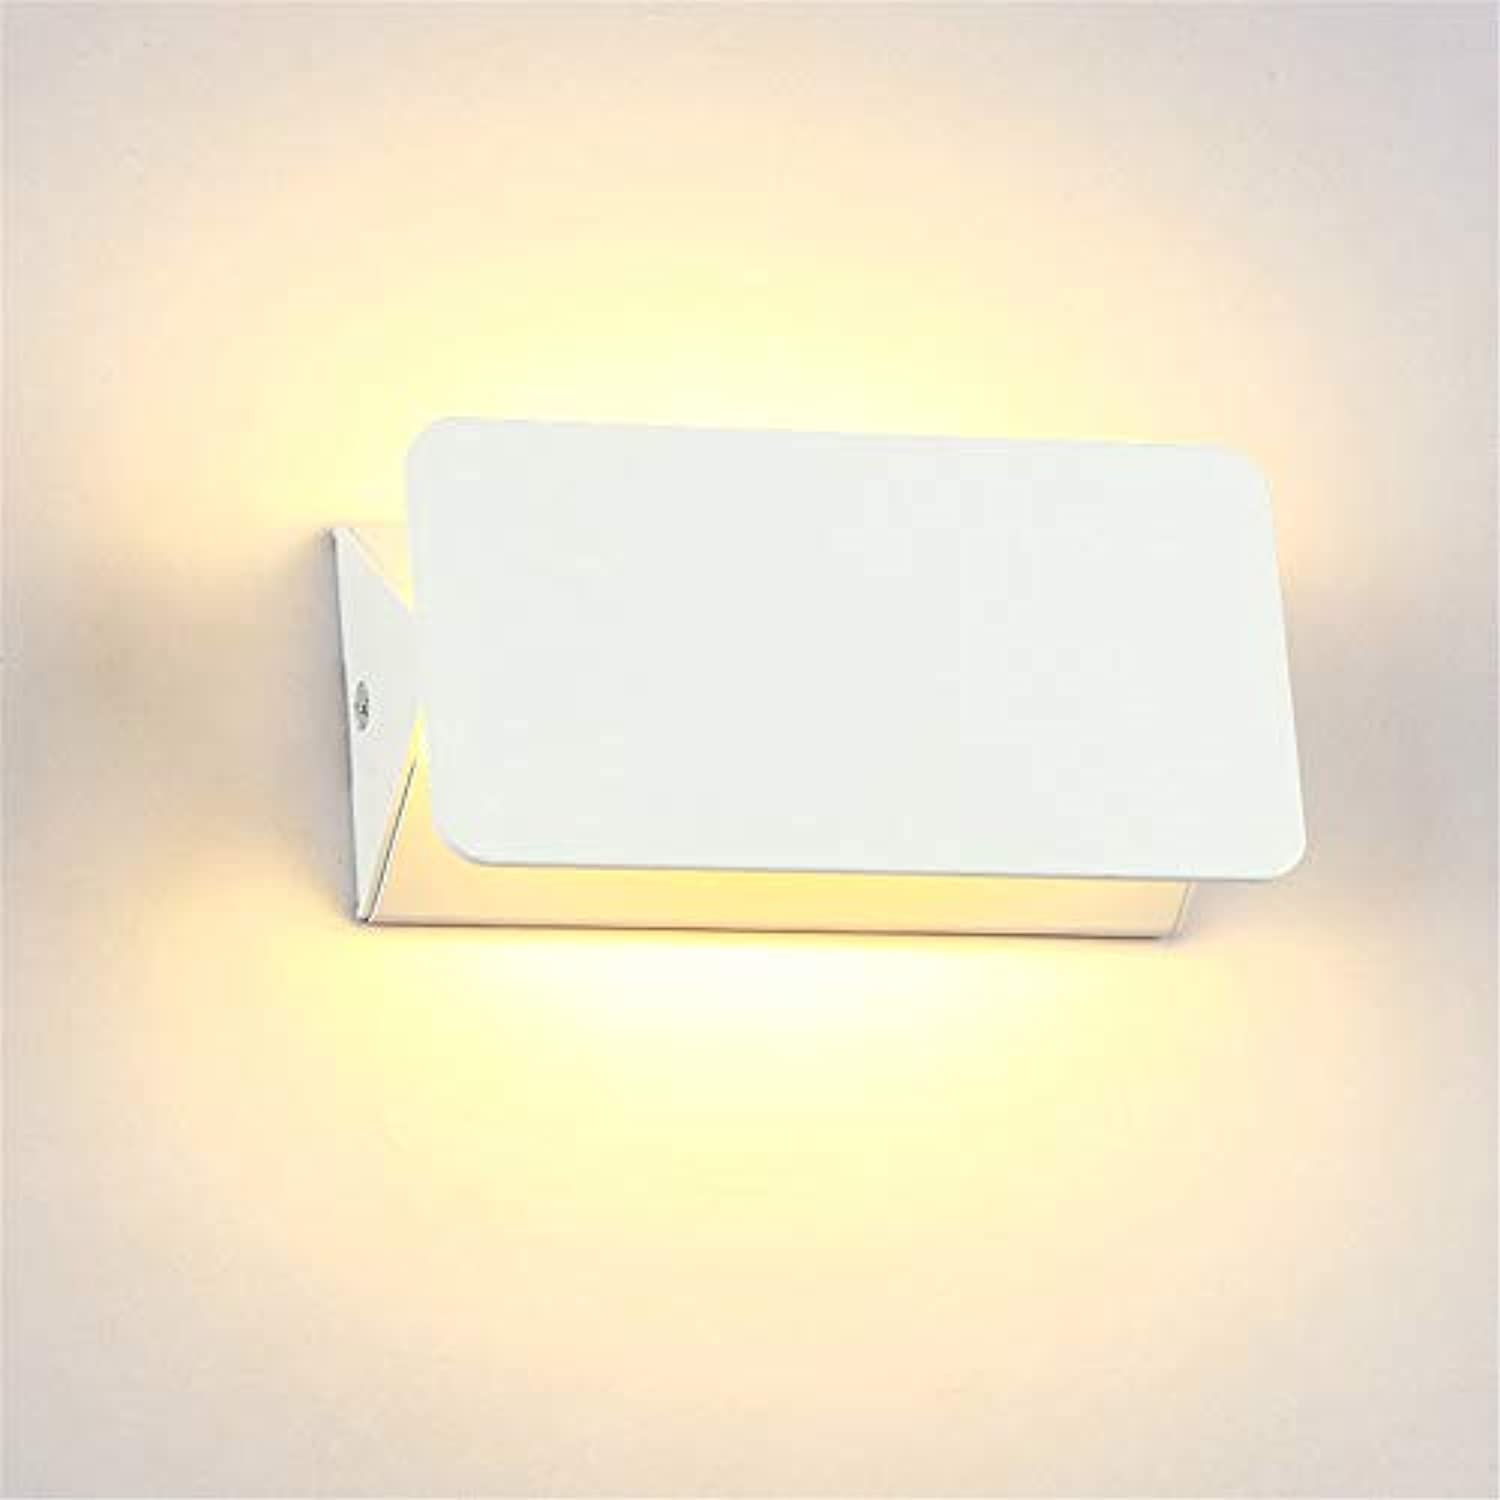 NOBLJX 5W Modern LED Wall Light Upper and Lower Wall Lamp Dimmable Winkel Waterproof Wall Lamp Creative Bedroom Living Room Corridor Garden Lighting,warmWeiß